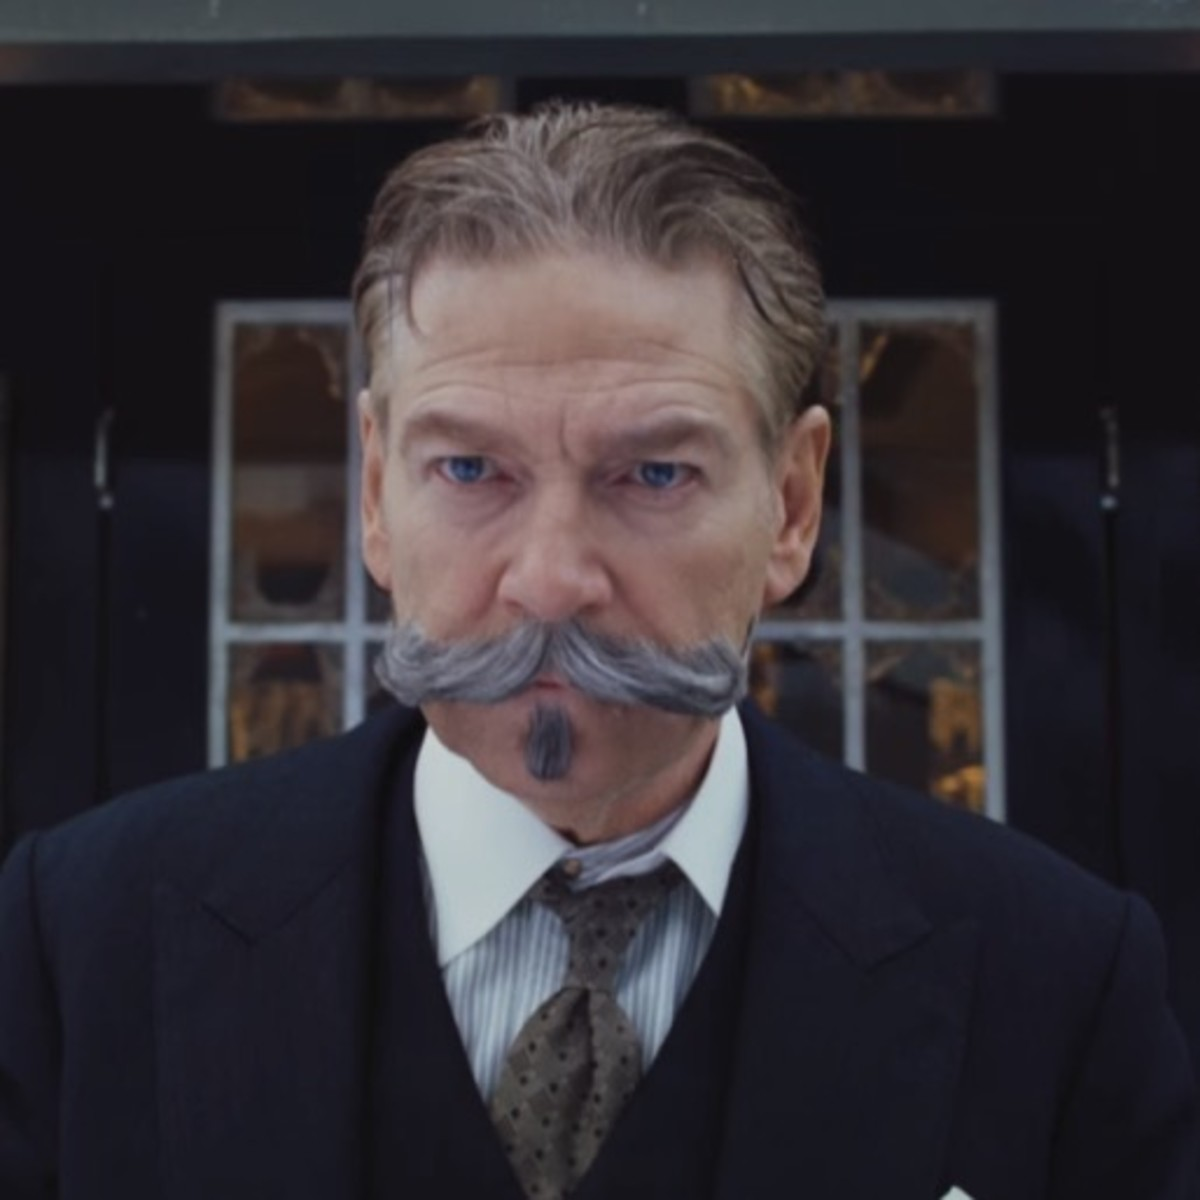 Branagh certainly chose the right man to play the leading role!